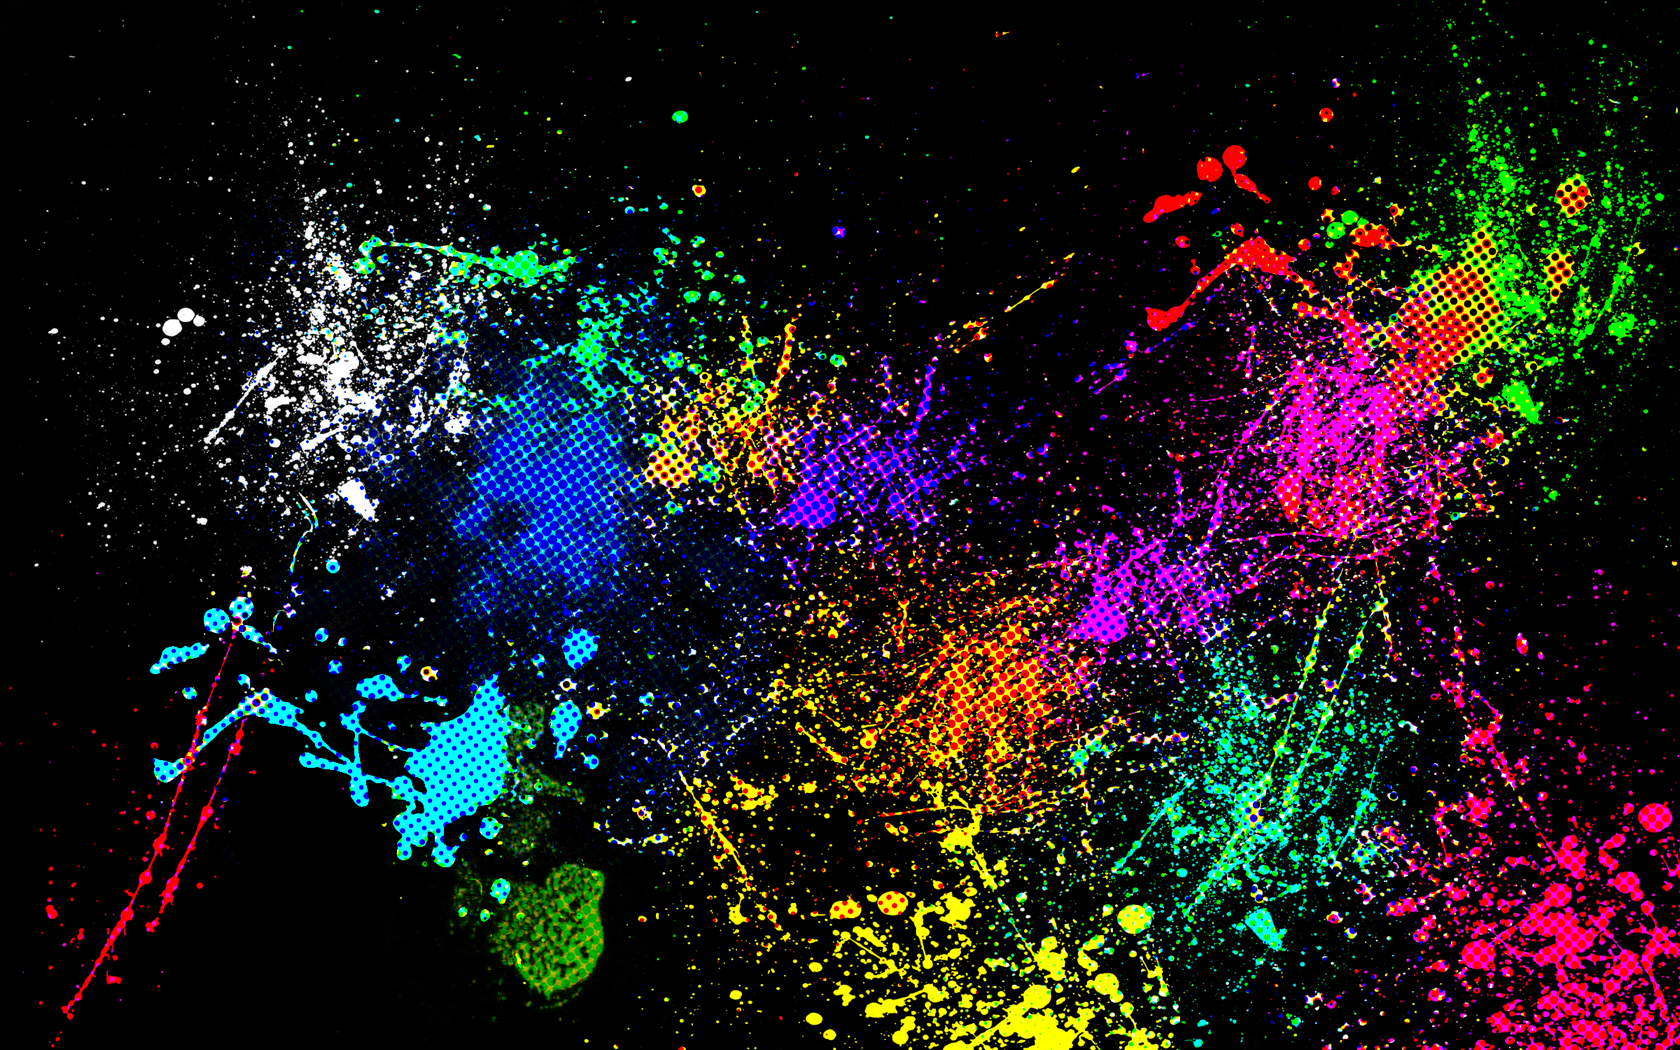 Colorful Paint Splatter Wallpaper7